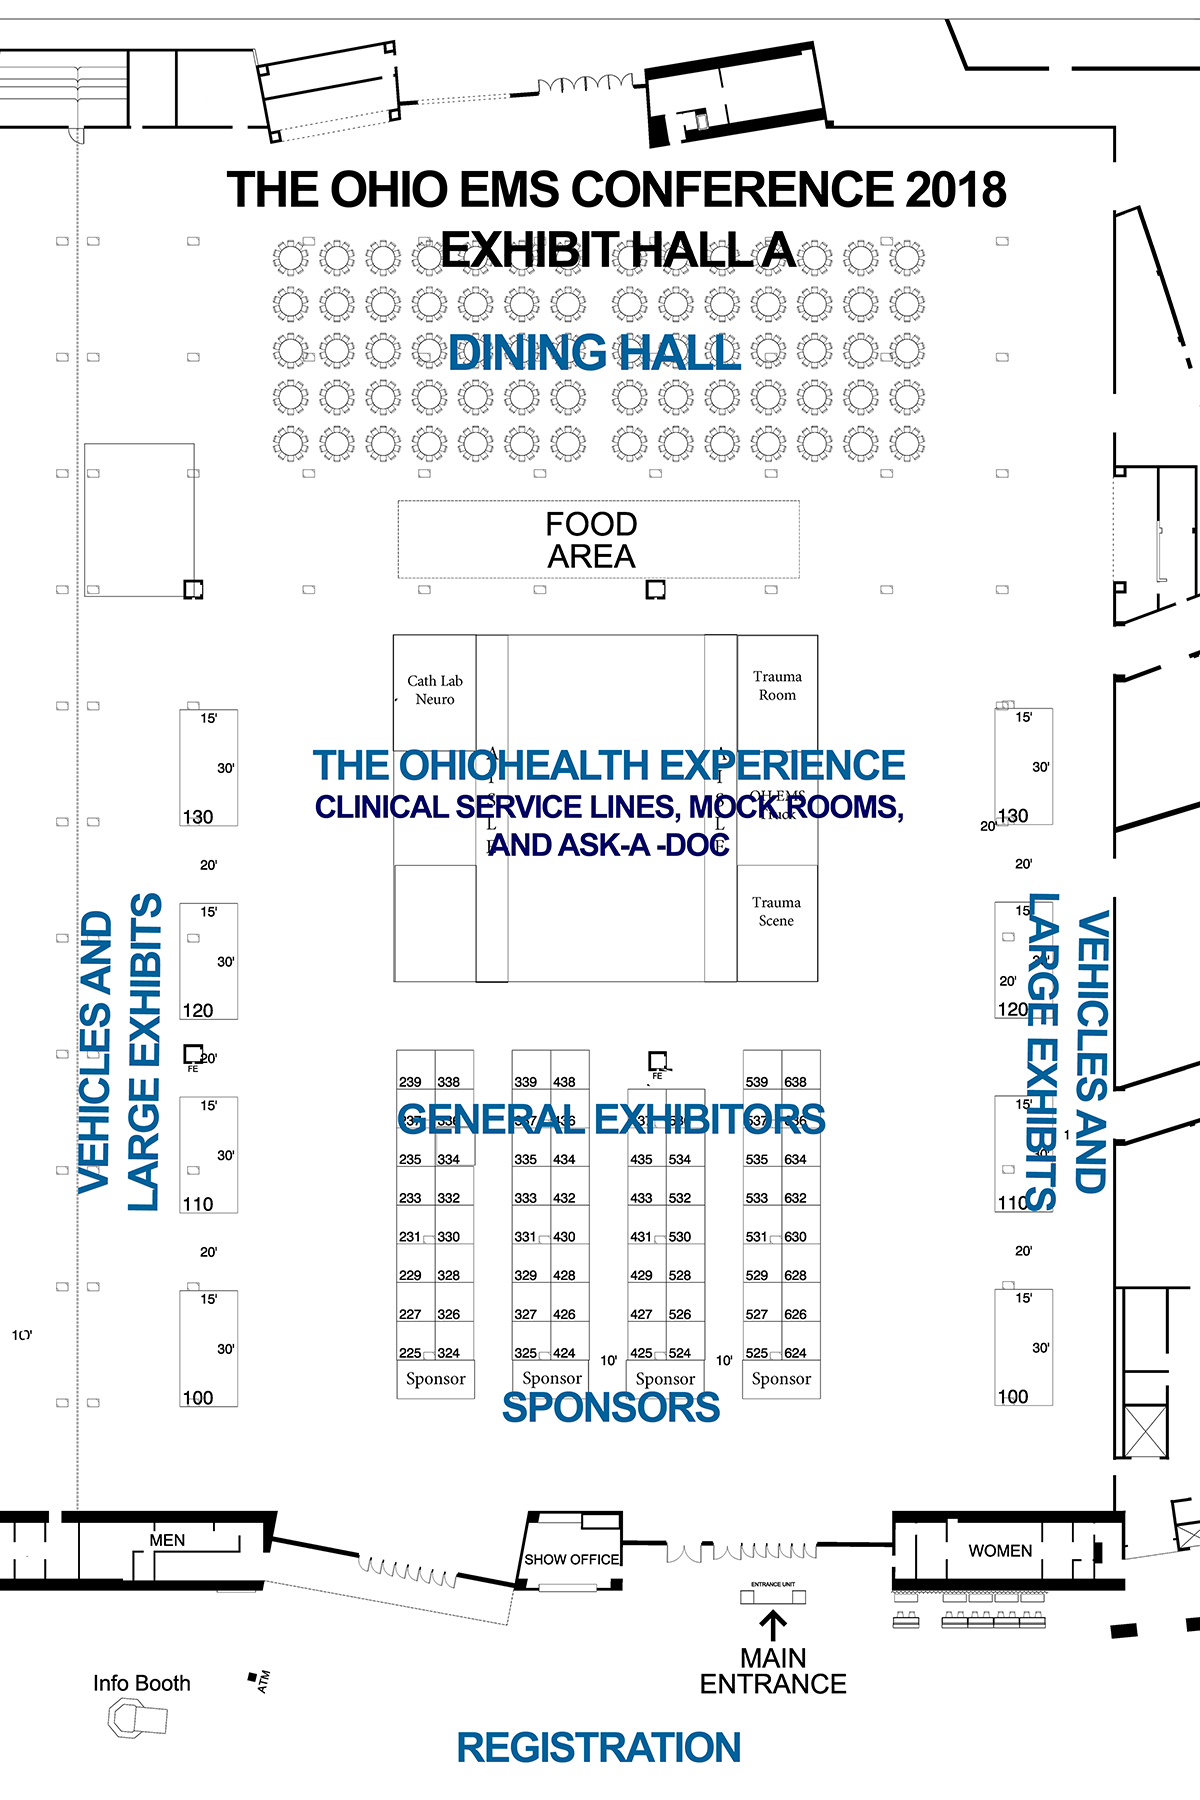 The ohio ems conference ohiohealth ems exhibitors and sponsors 1betcityfo Choice Image